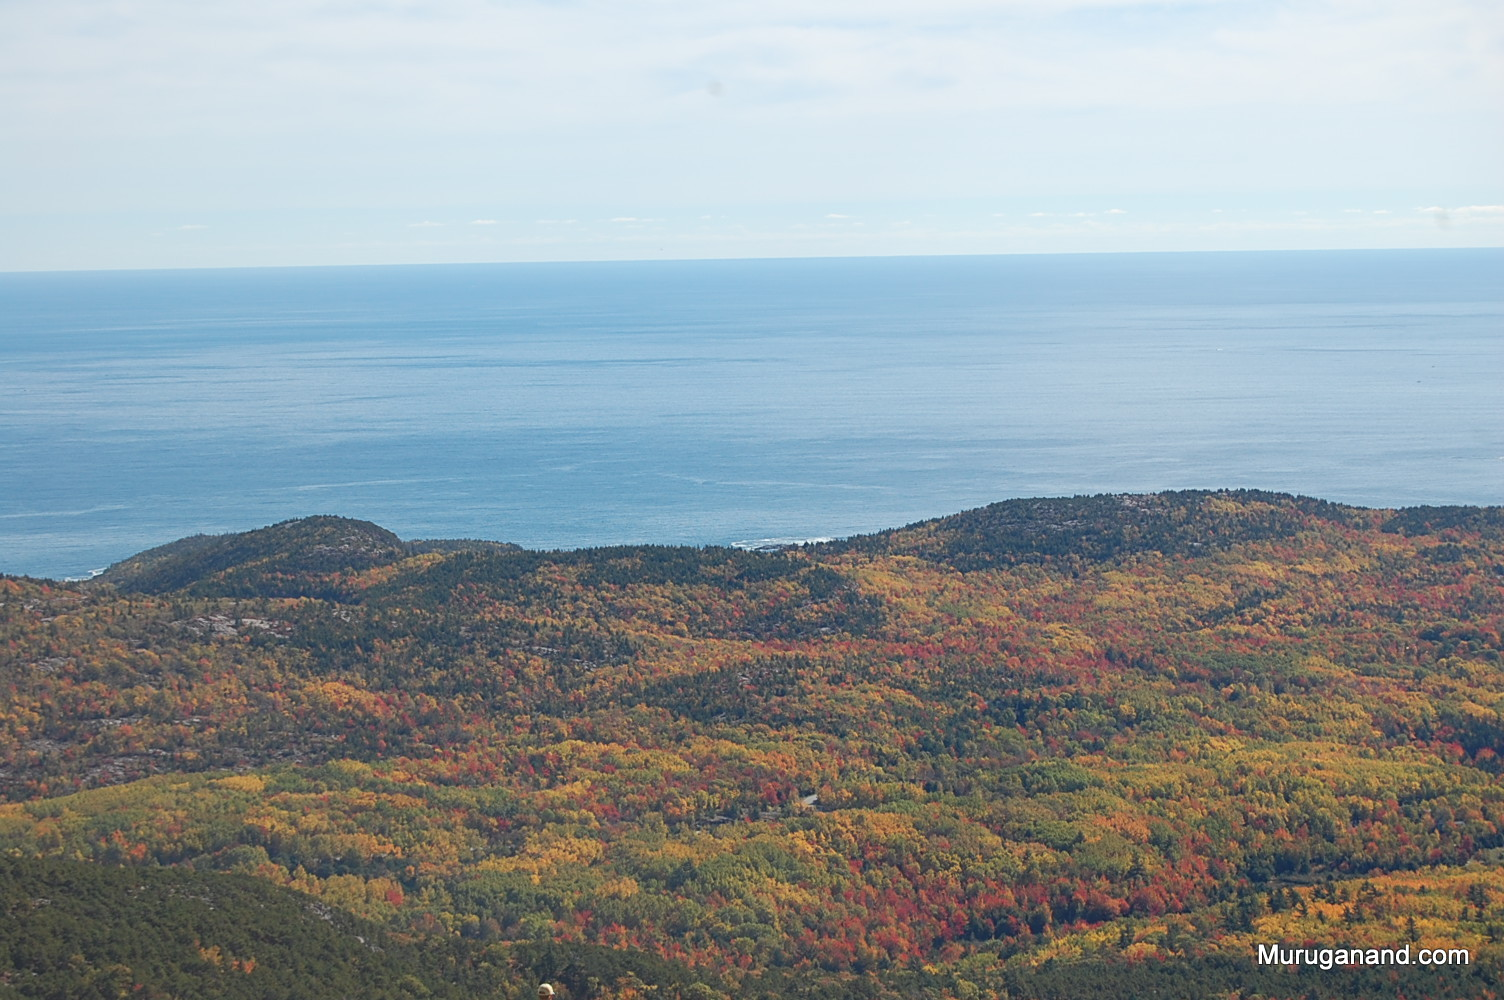 Acadia means, heaven on earth in French.